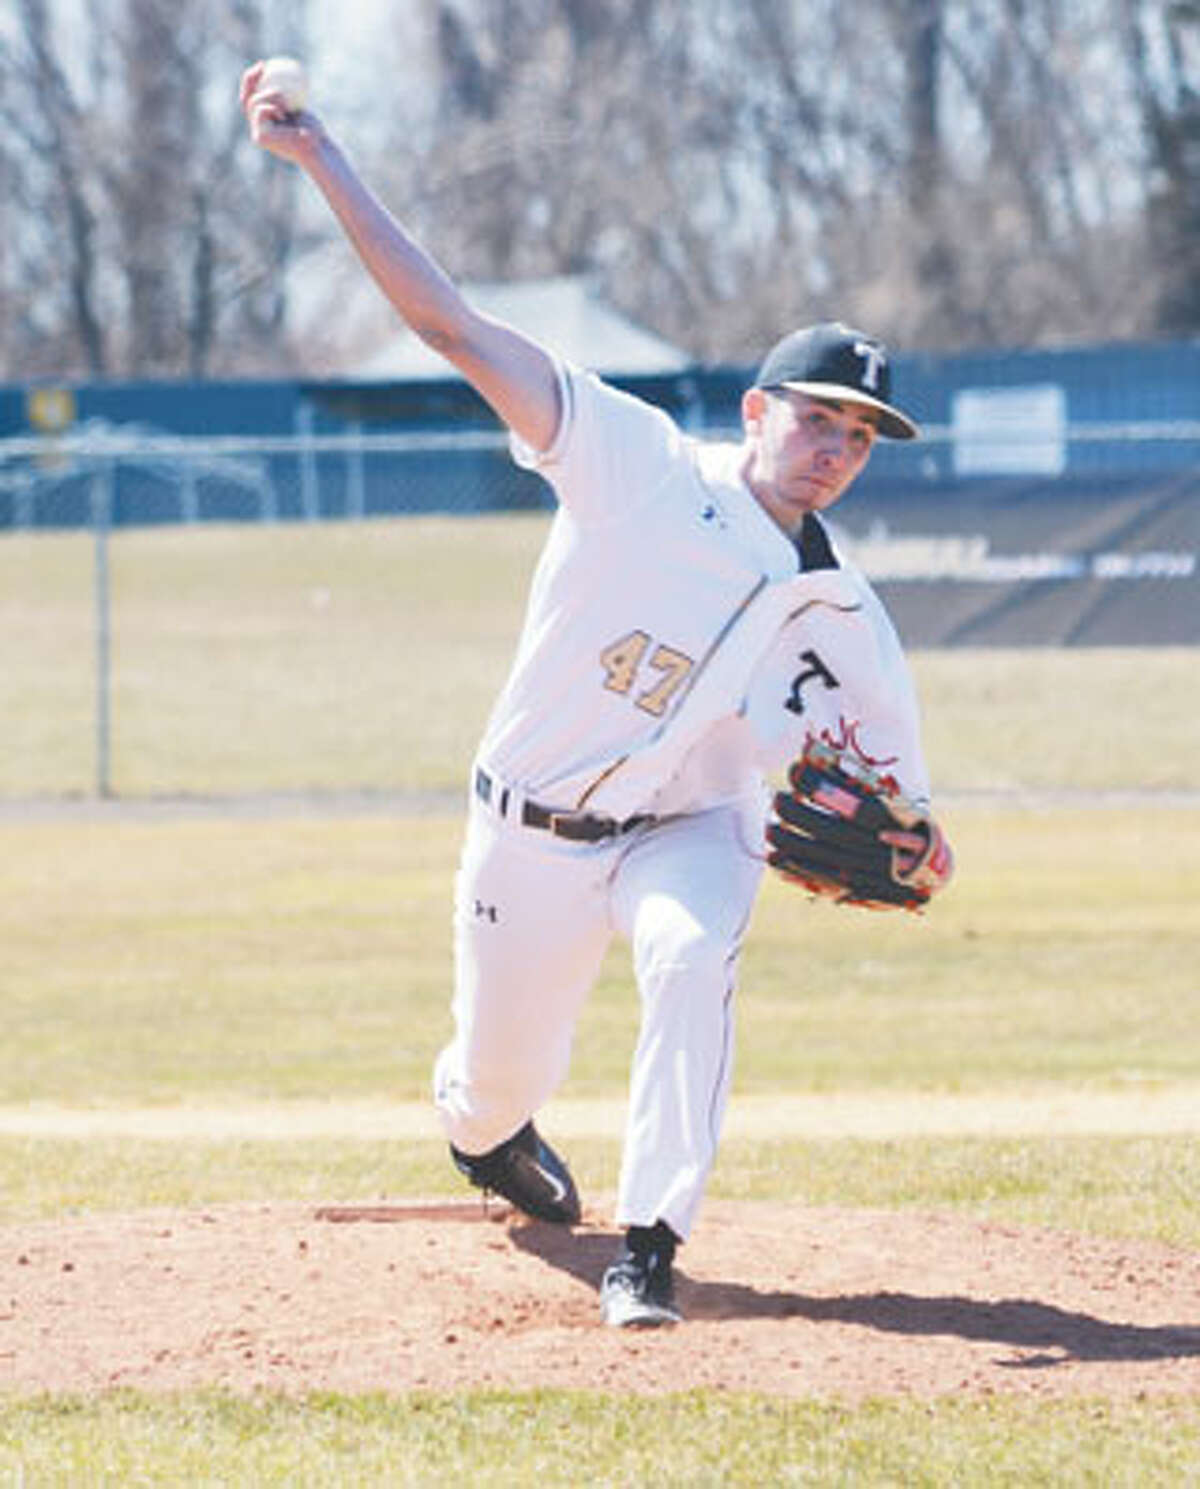 Trumbull's Ben Fero pitched a no-hitter in the FCIAC quarterfinals on Monday, but the Eagles fell to Darien 1-0 on an unearned run.